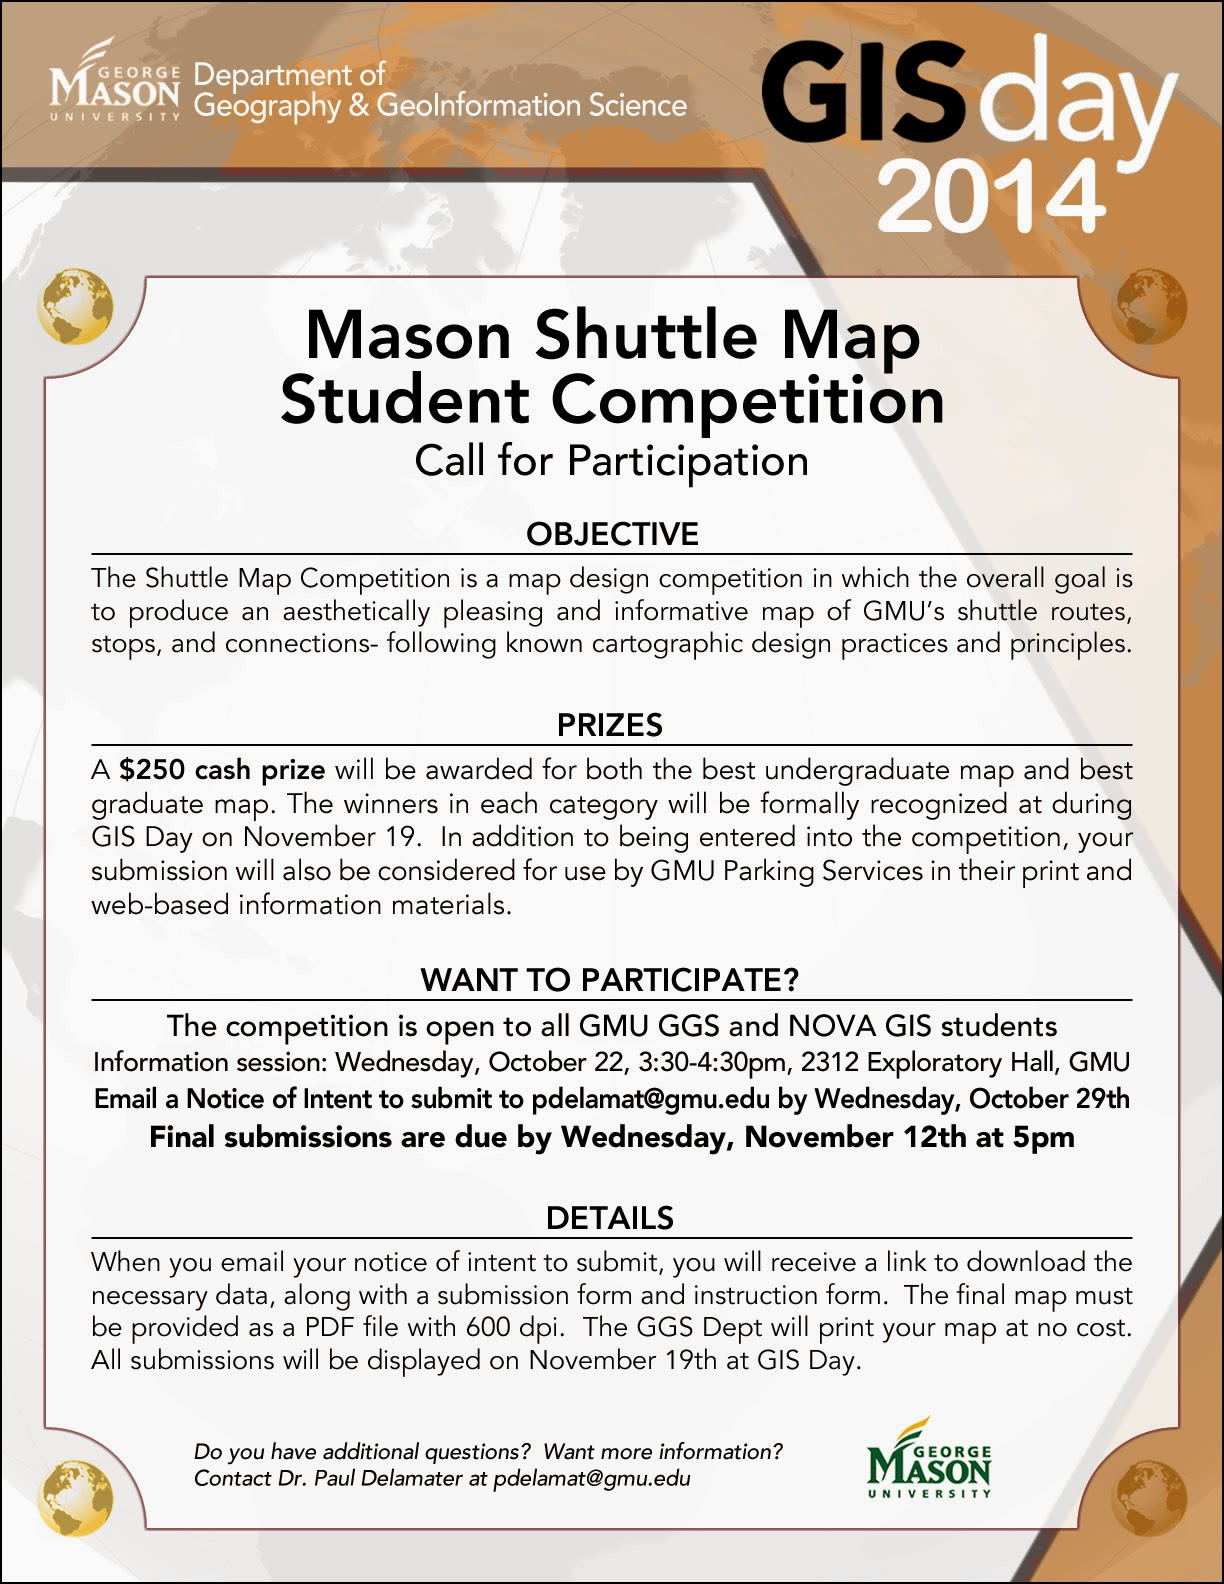 the mason shuttle map is particularly suited to this class they are offering the data in illustrator ai format